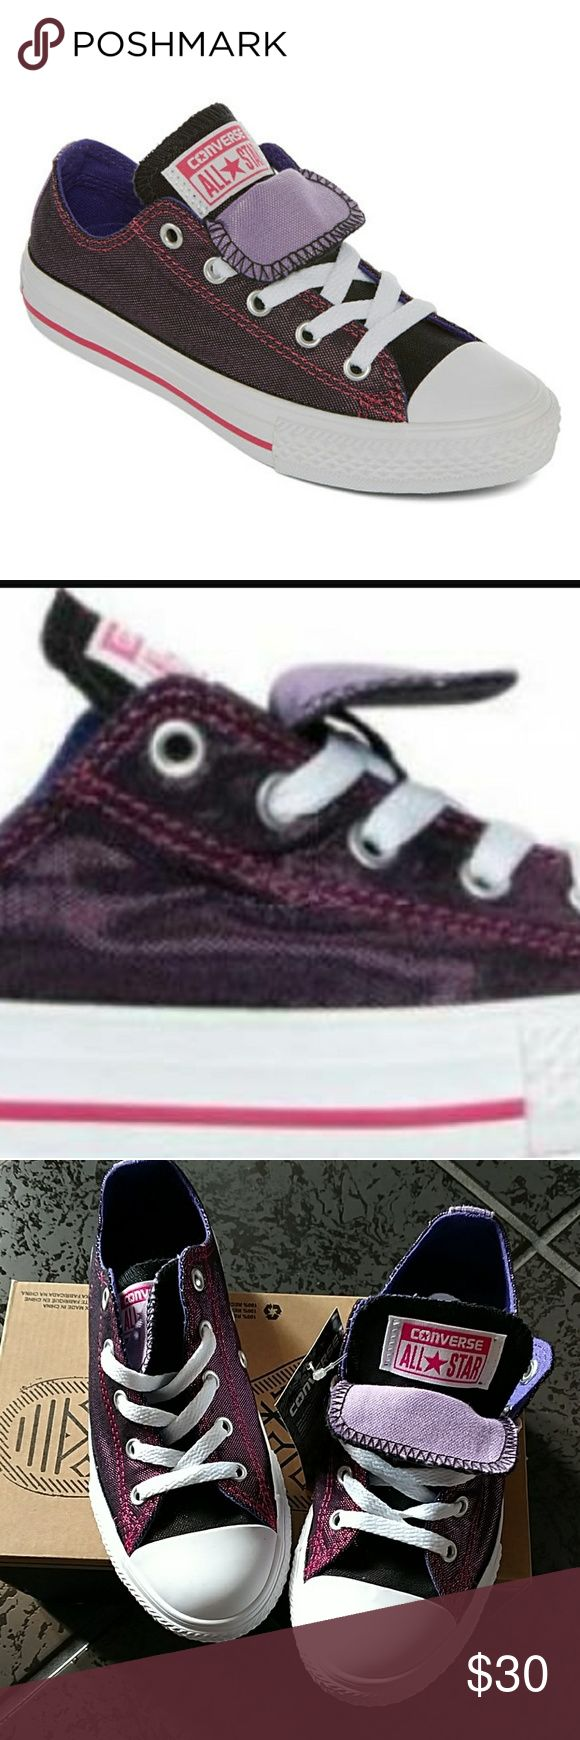 ✴️FINAL DROP -Converse Double Tongue Ox Sneakers New in box - double tongue Chuck Taylors.  Vivid pink/candy grape color (irradecent) Price pretty firm Converse Shoes Sneakers